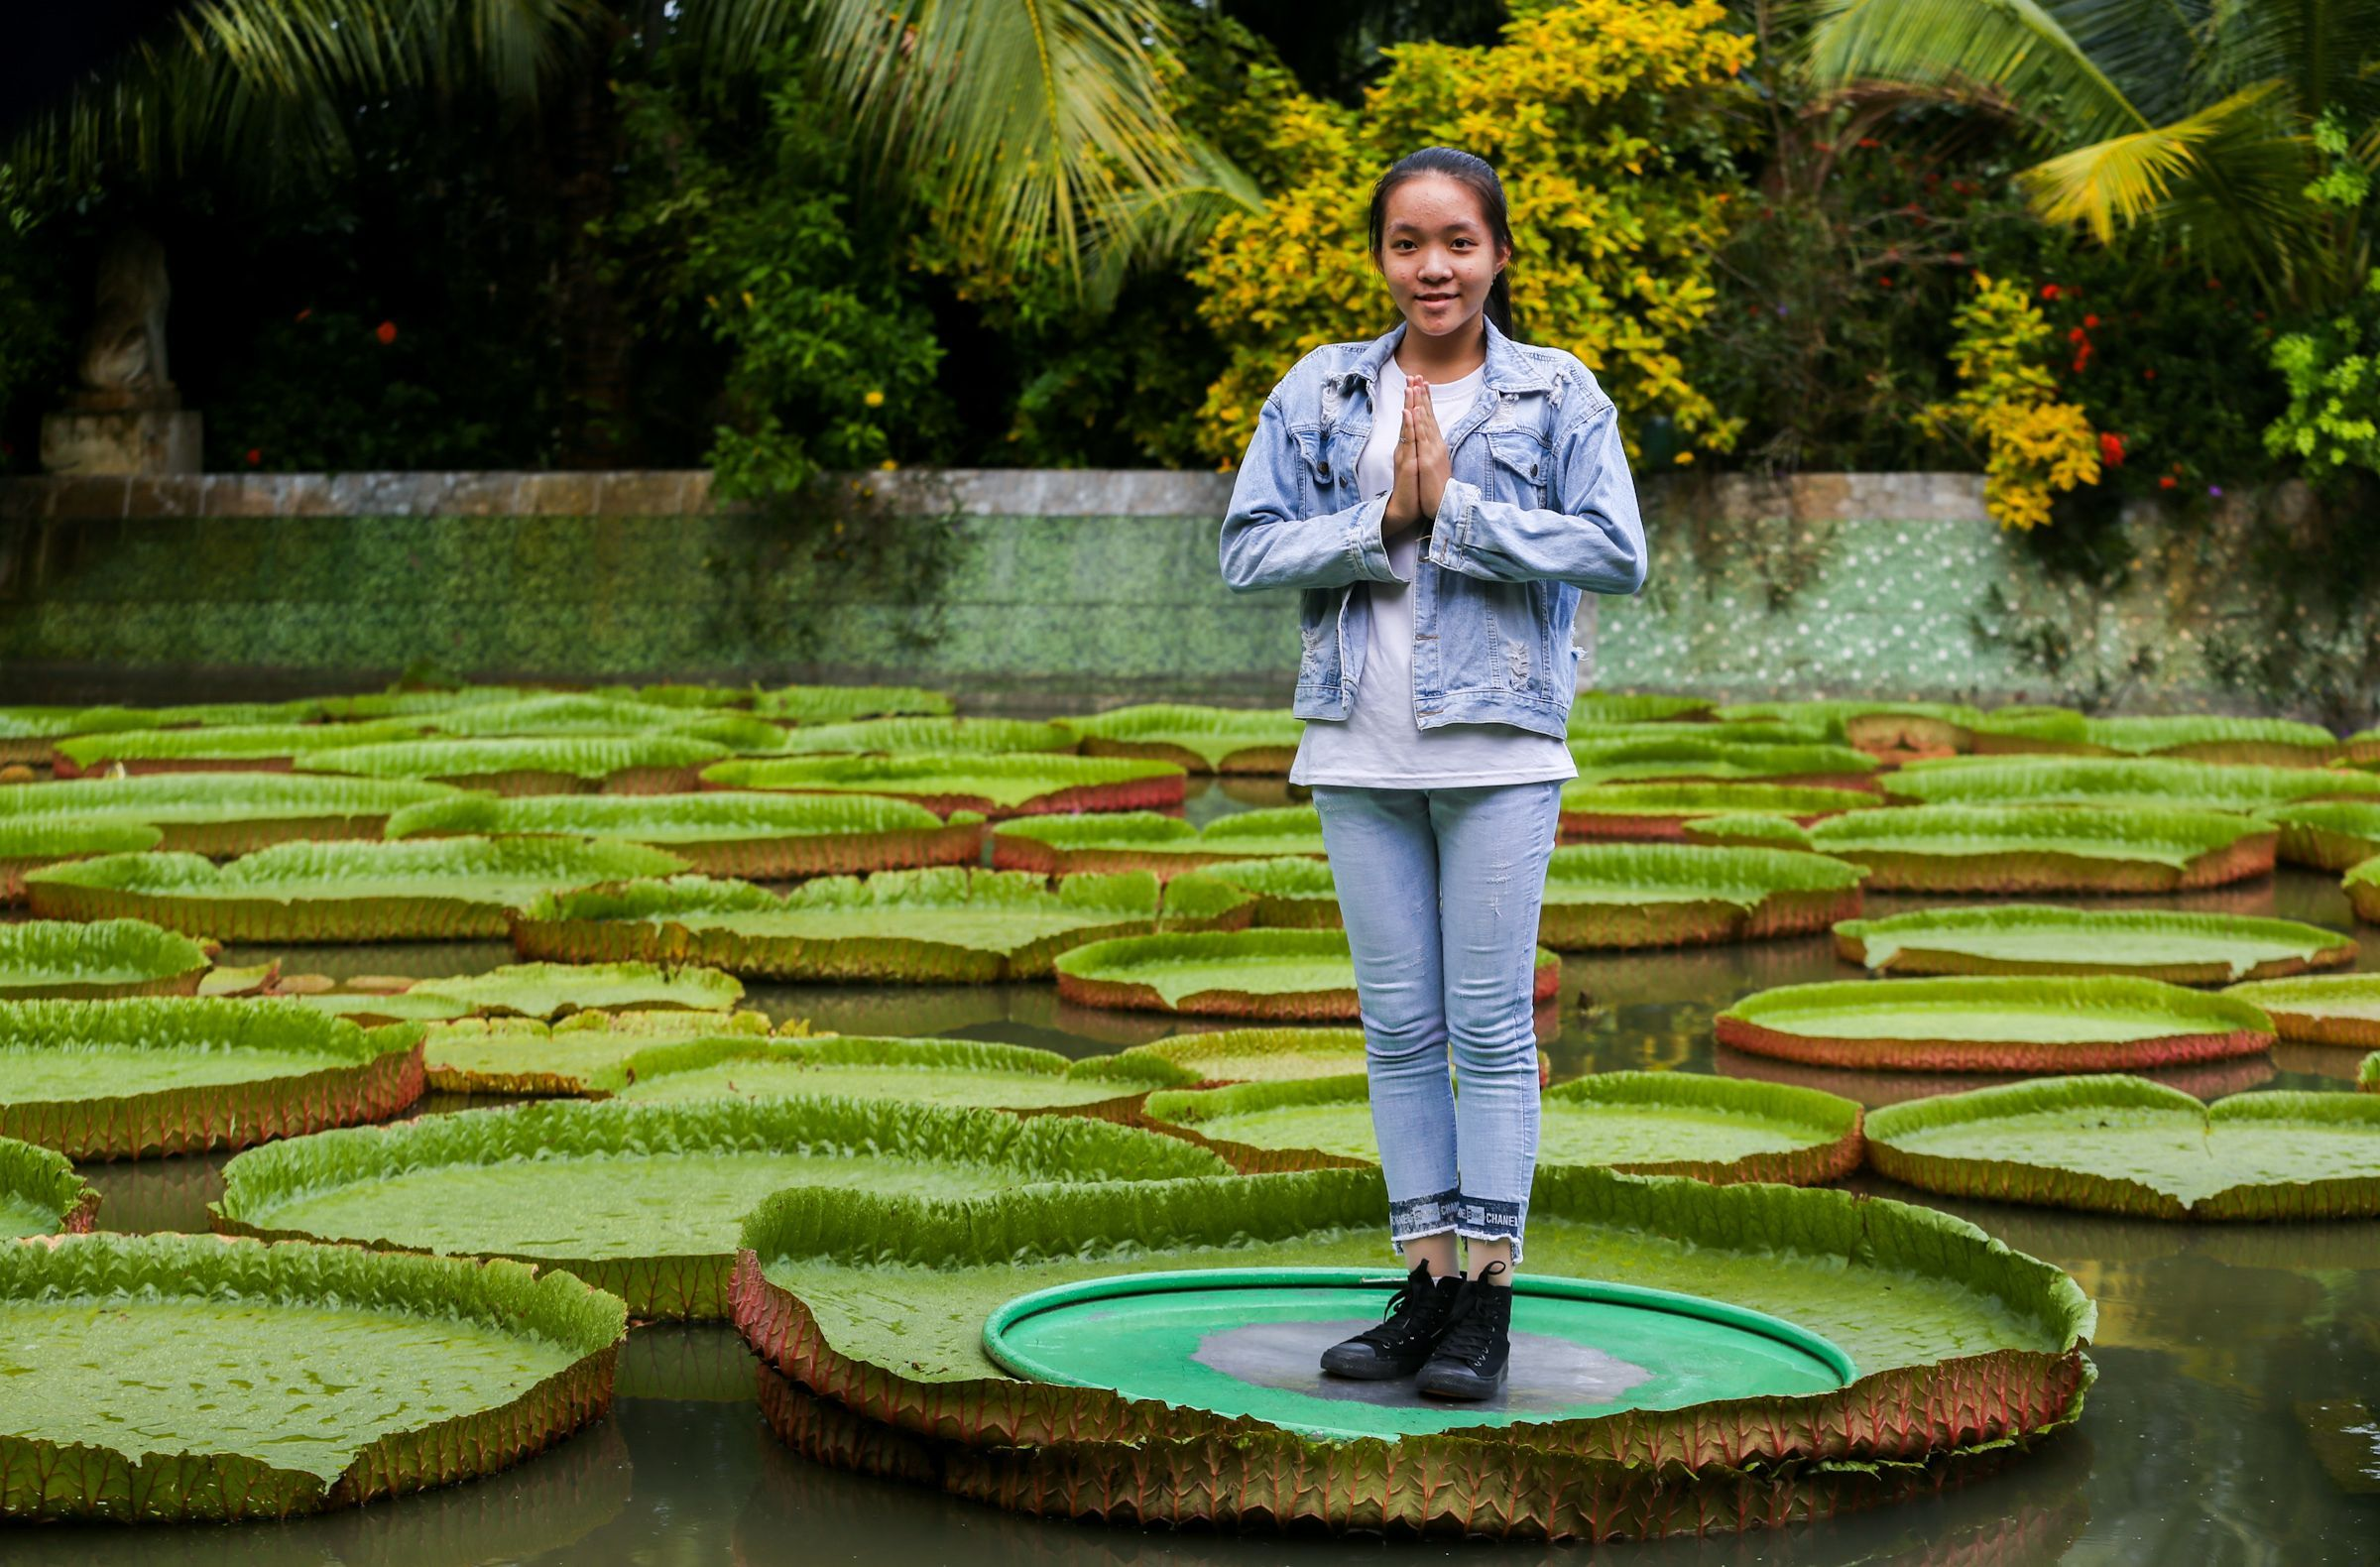 Visiting Phuoc Kien Pagoda - the pagoda with a giant lotus that can